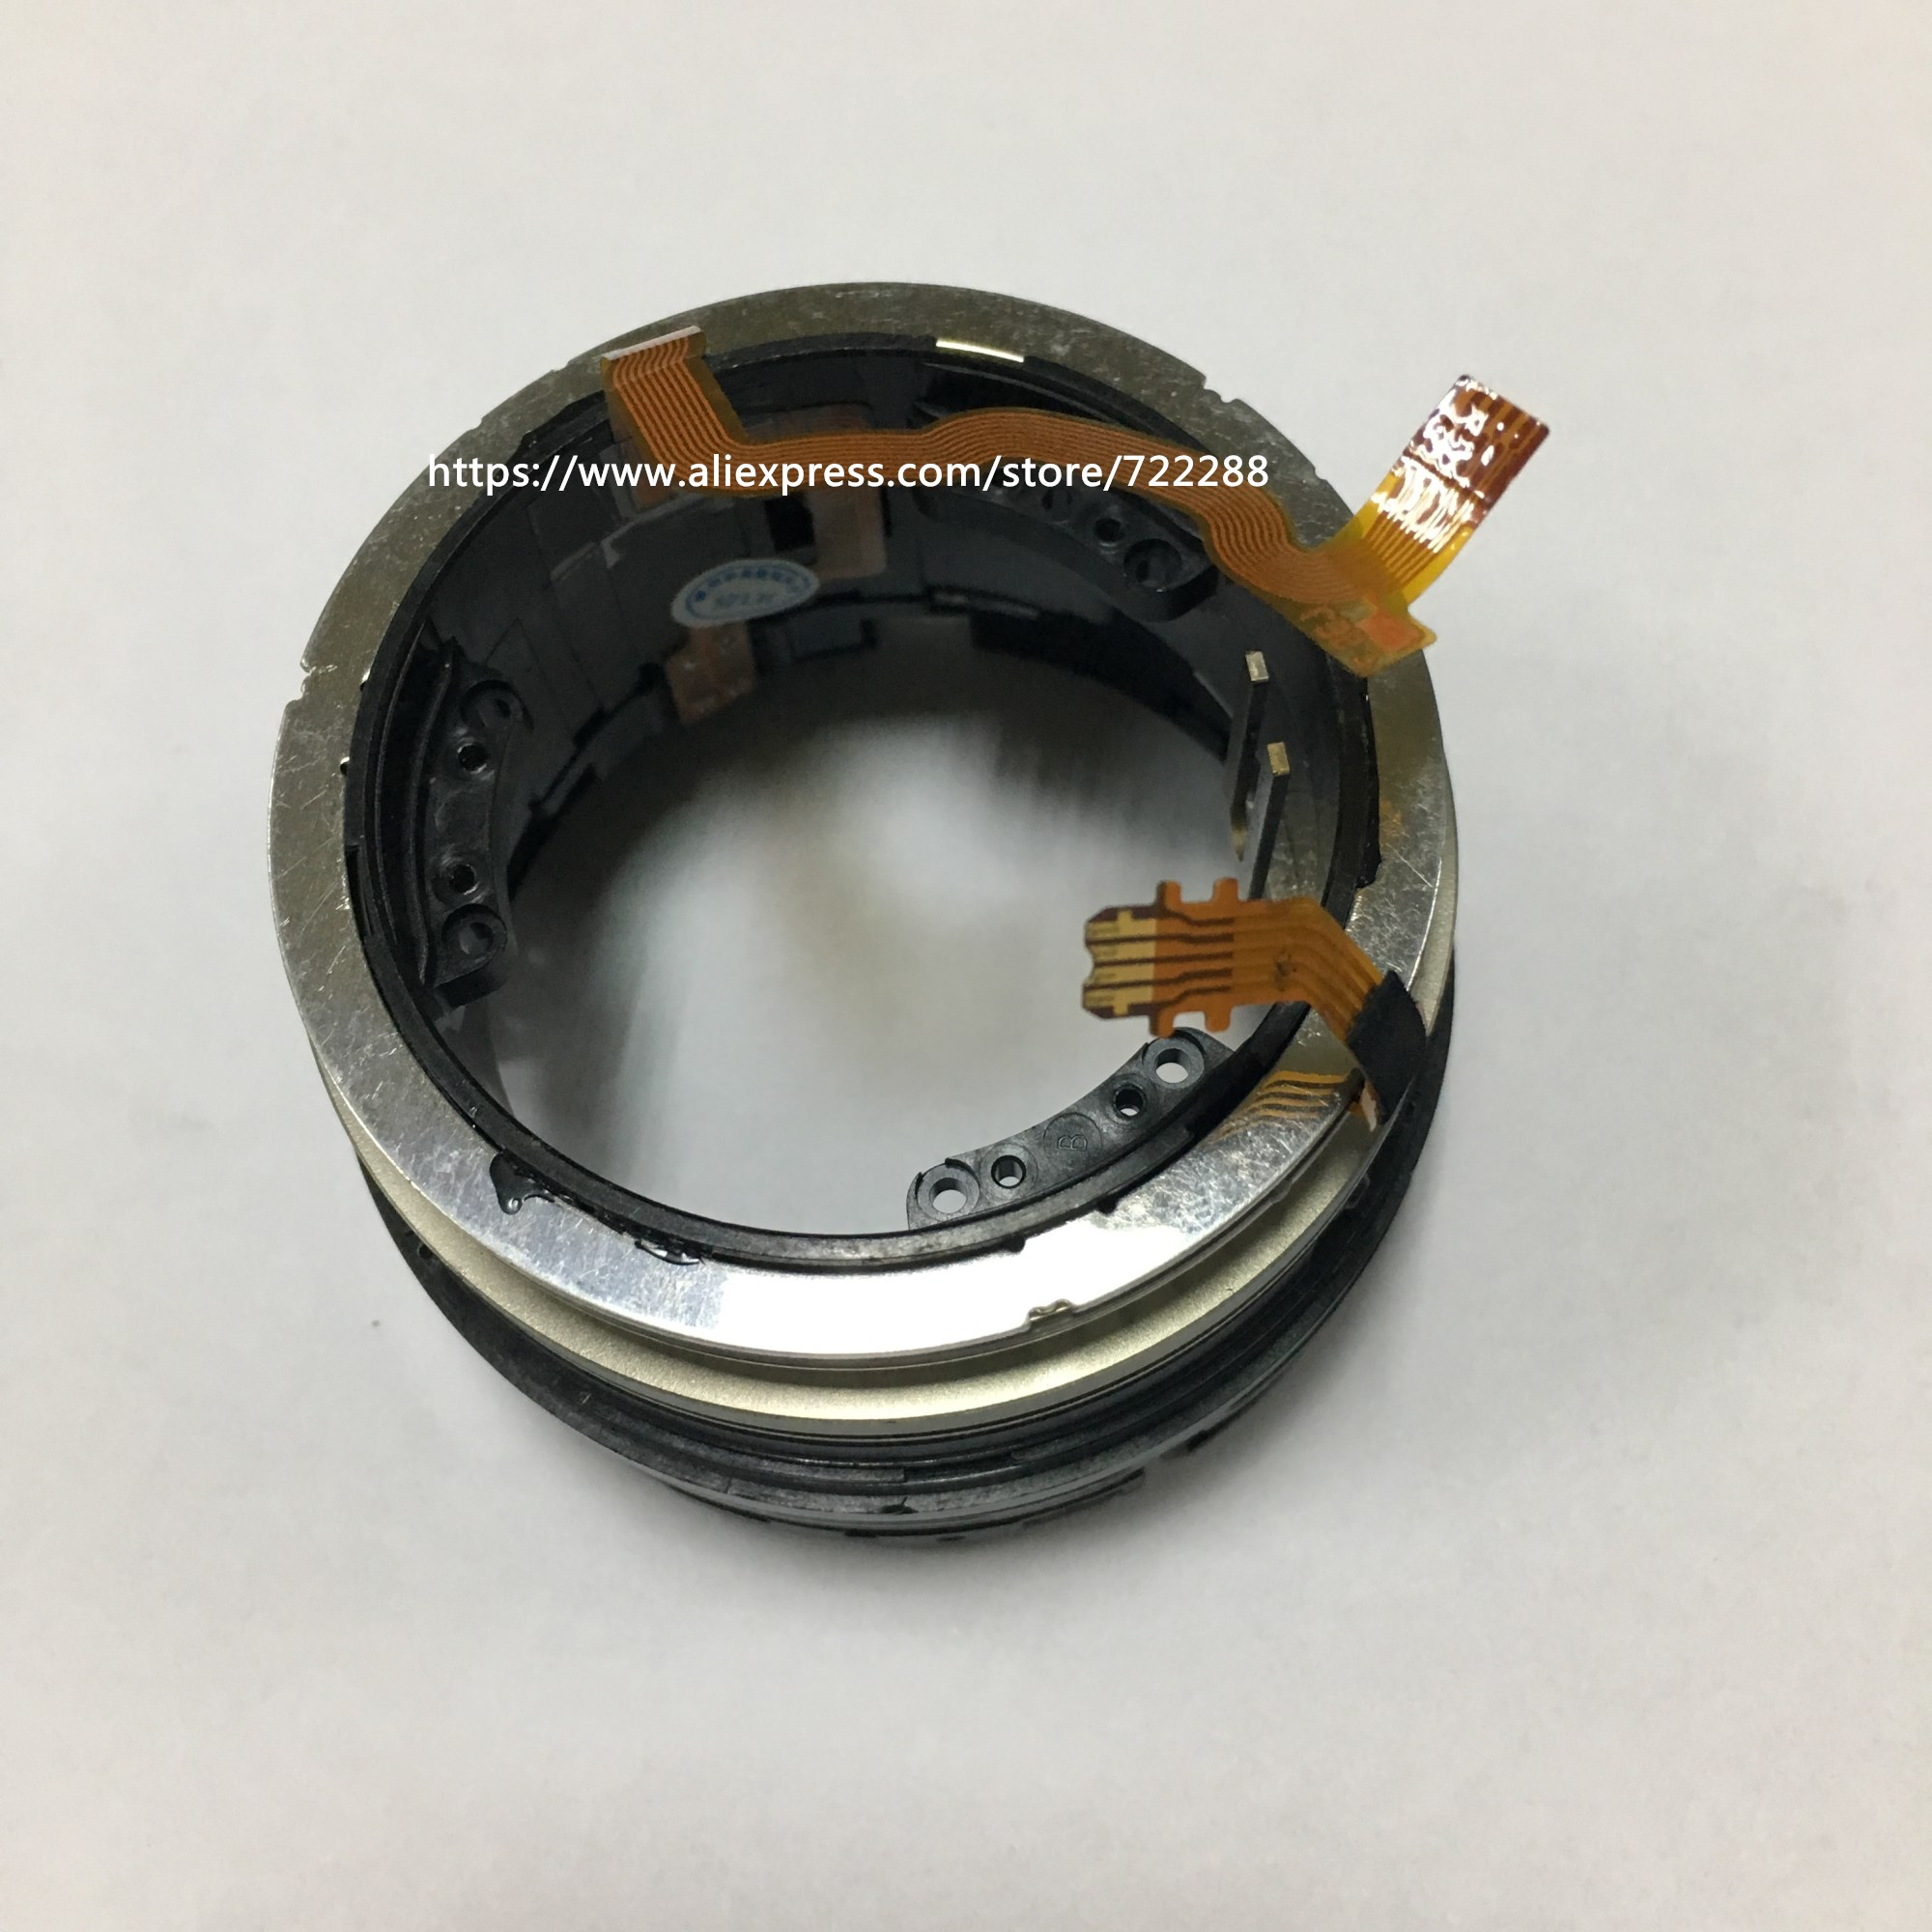 Image 4 - Repair Part For Canon EF 85mm F/1.8 USM Lens Focusing Assy AF Focus Motor Unit YG2 0057 009-in Electronics Stocks from Electronic Components & Supplies